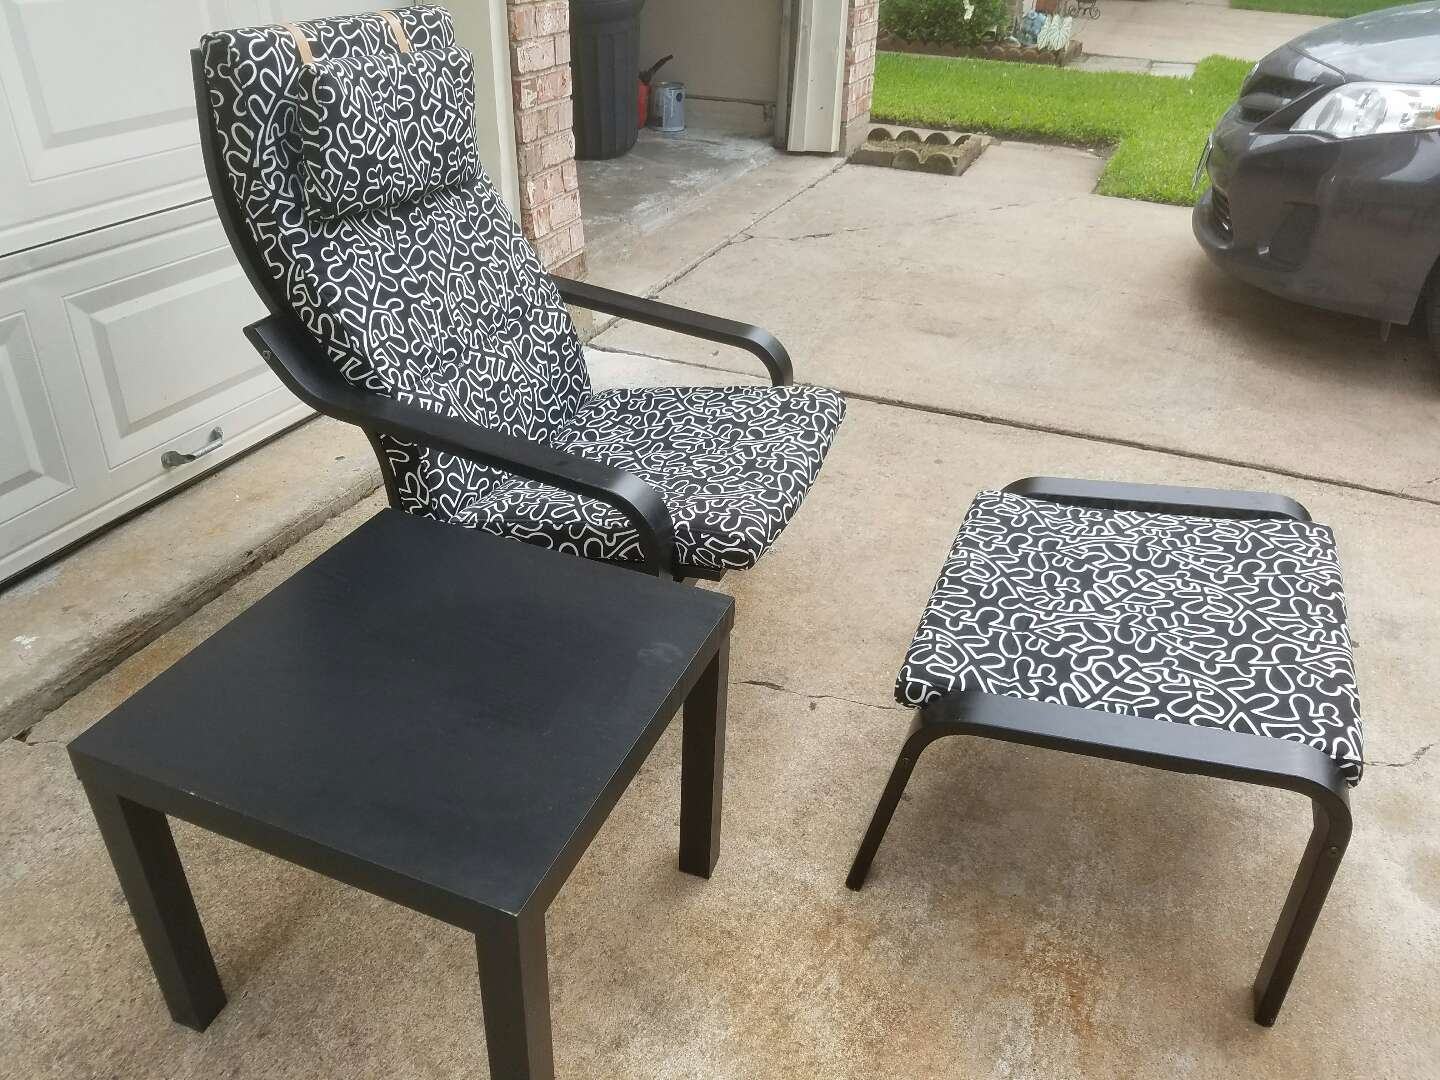 ikea poang rocking chair with footstool and table for sale in stafford tx 5miles buy and sell. Black Bedroom Furniture Sets. Home Design Ideas